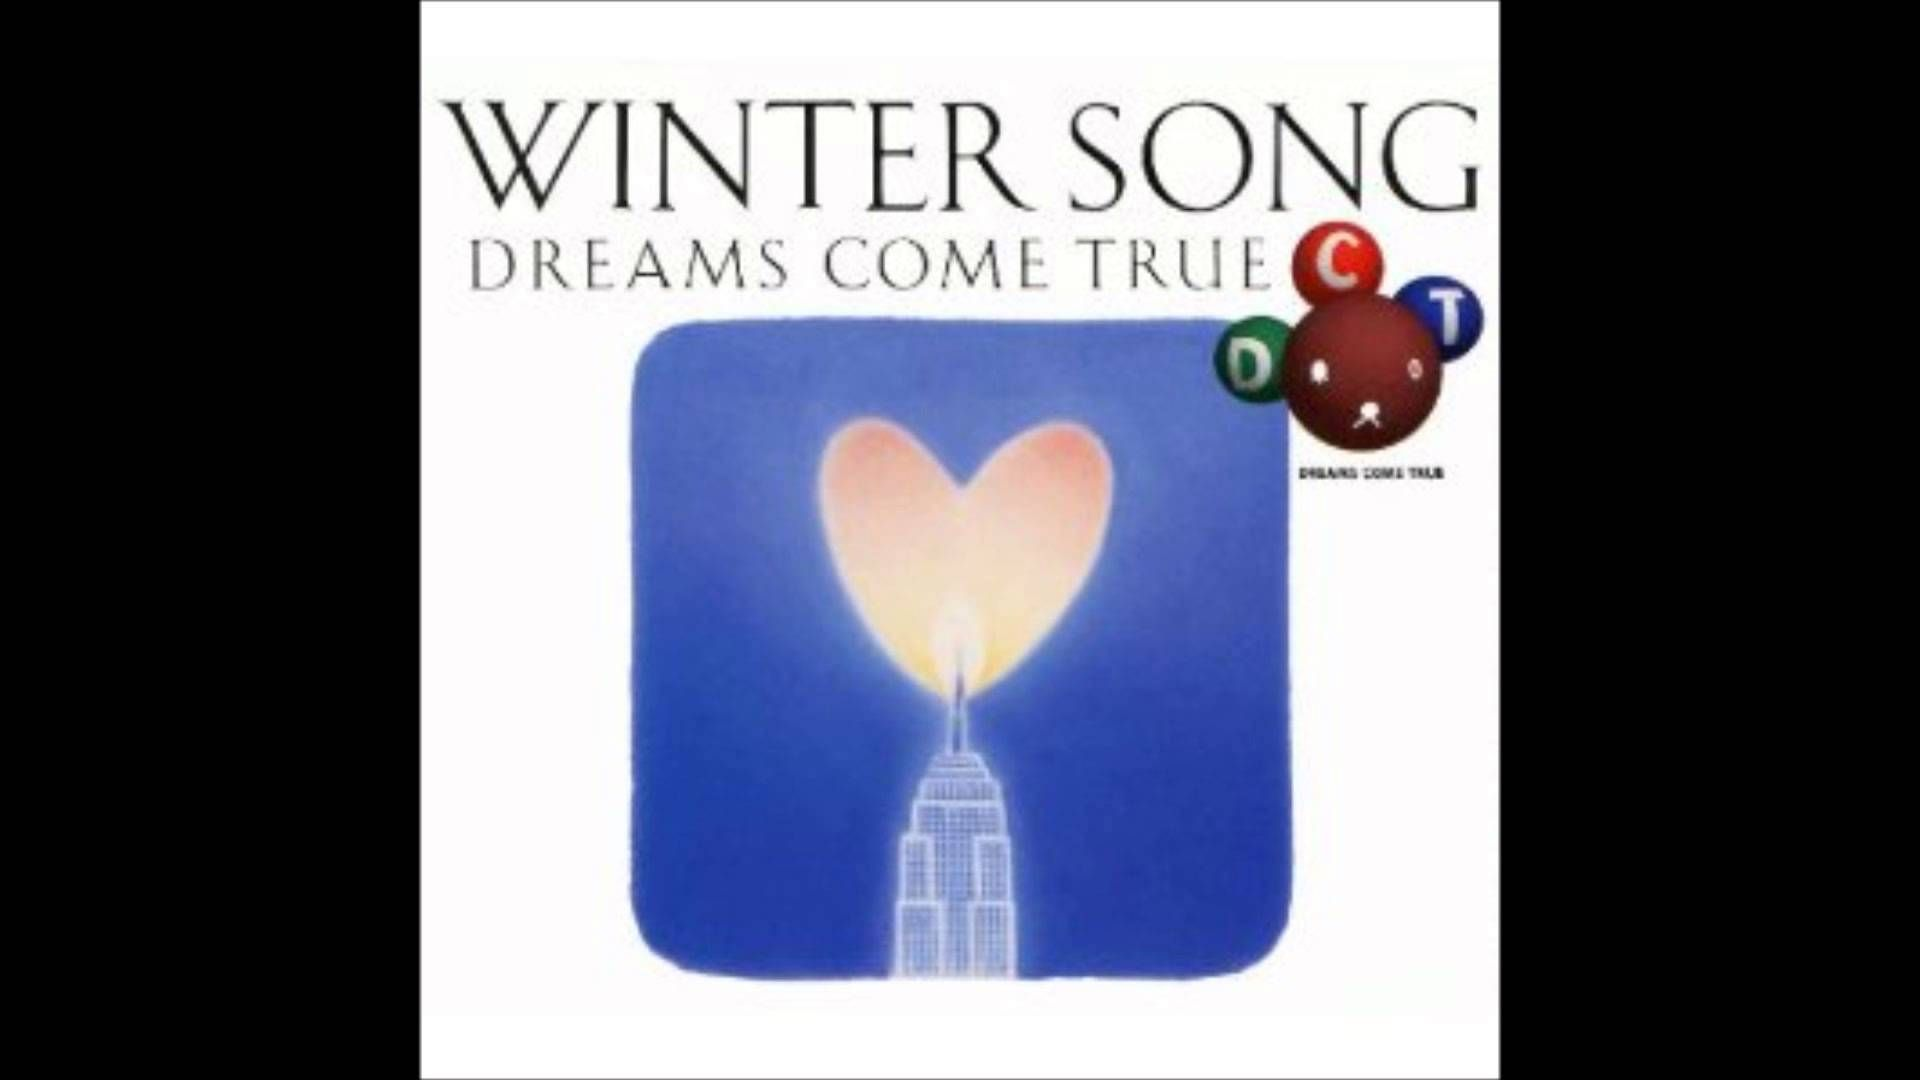 dreams come true winter song music box music. Black Bedroom Furniture Sets. Home Design Ideas